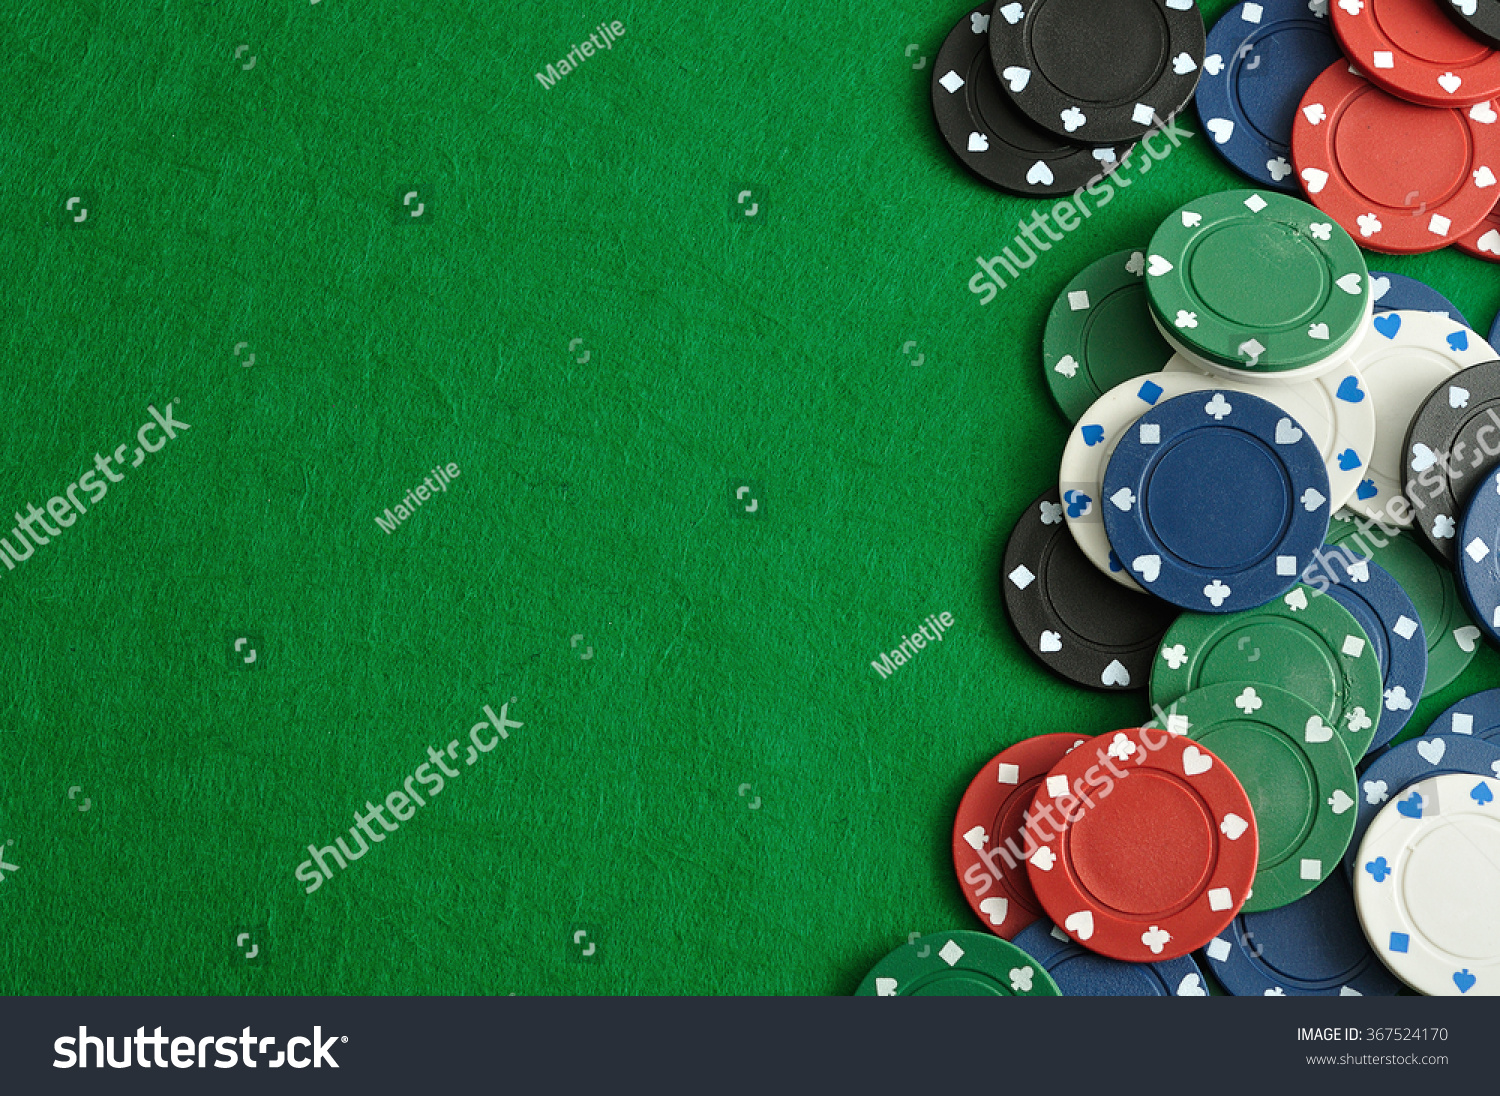 Poker table background - Poker Chips Forming A Border On The Right With A Green Background